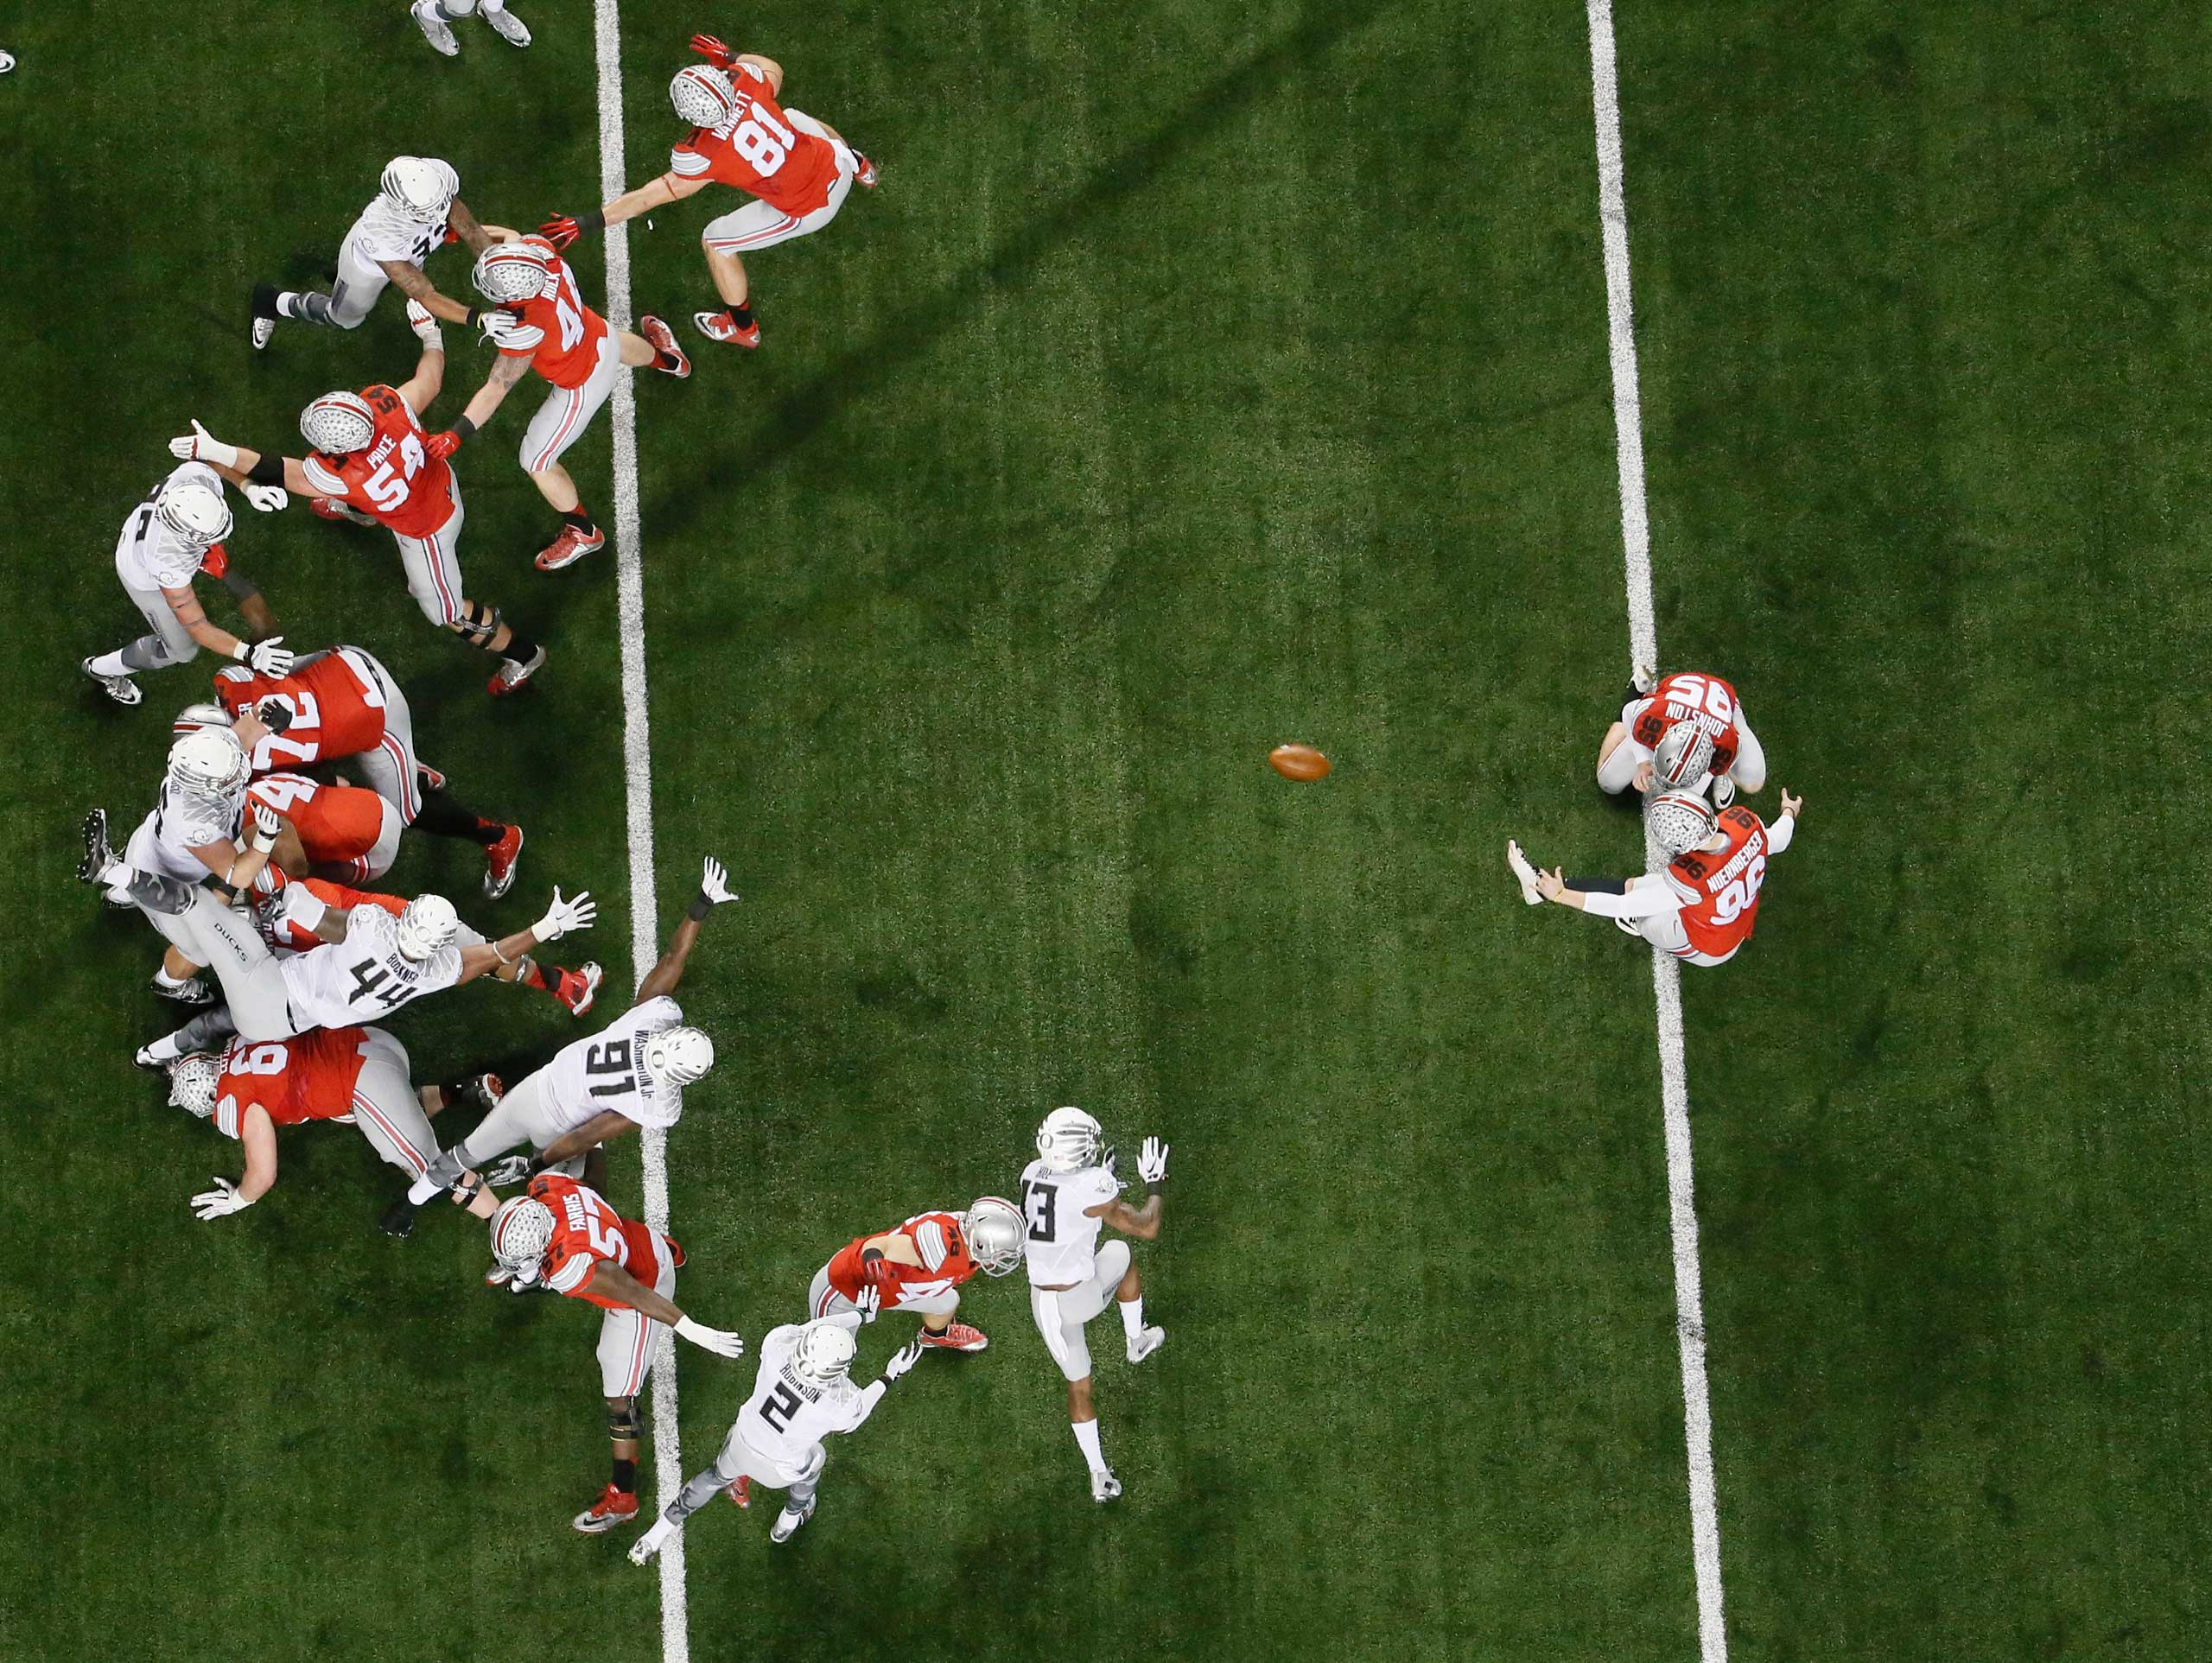 Ohio State place kicker Sean Nuernberger (96) kicks an extra point during the NCAA college football playoff championship game against Oregon on Jan. 12, 2015, in Arlington, Texas.